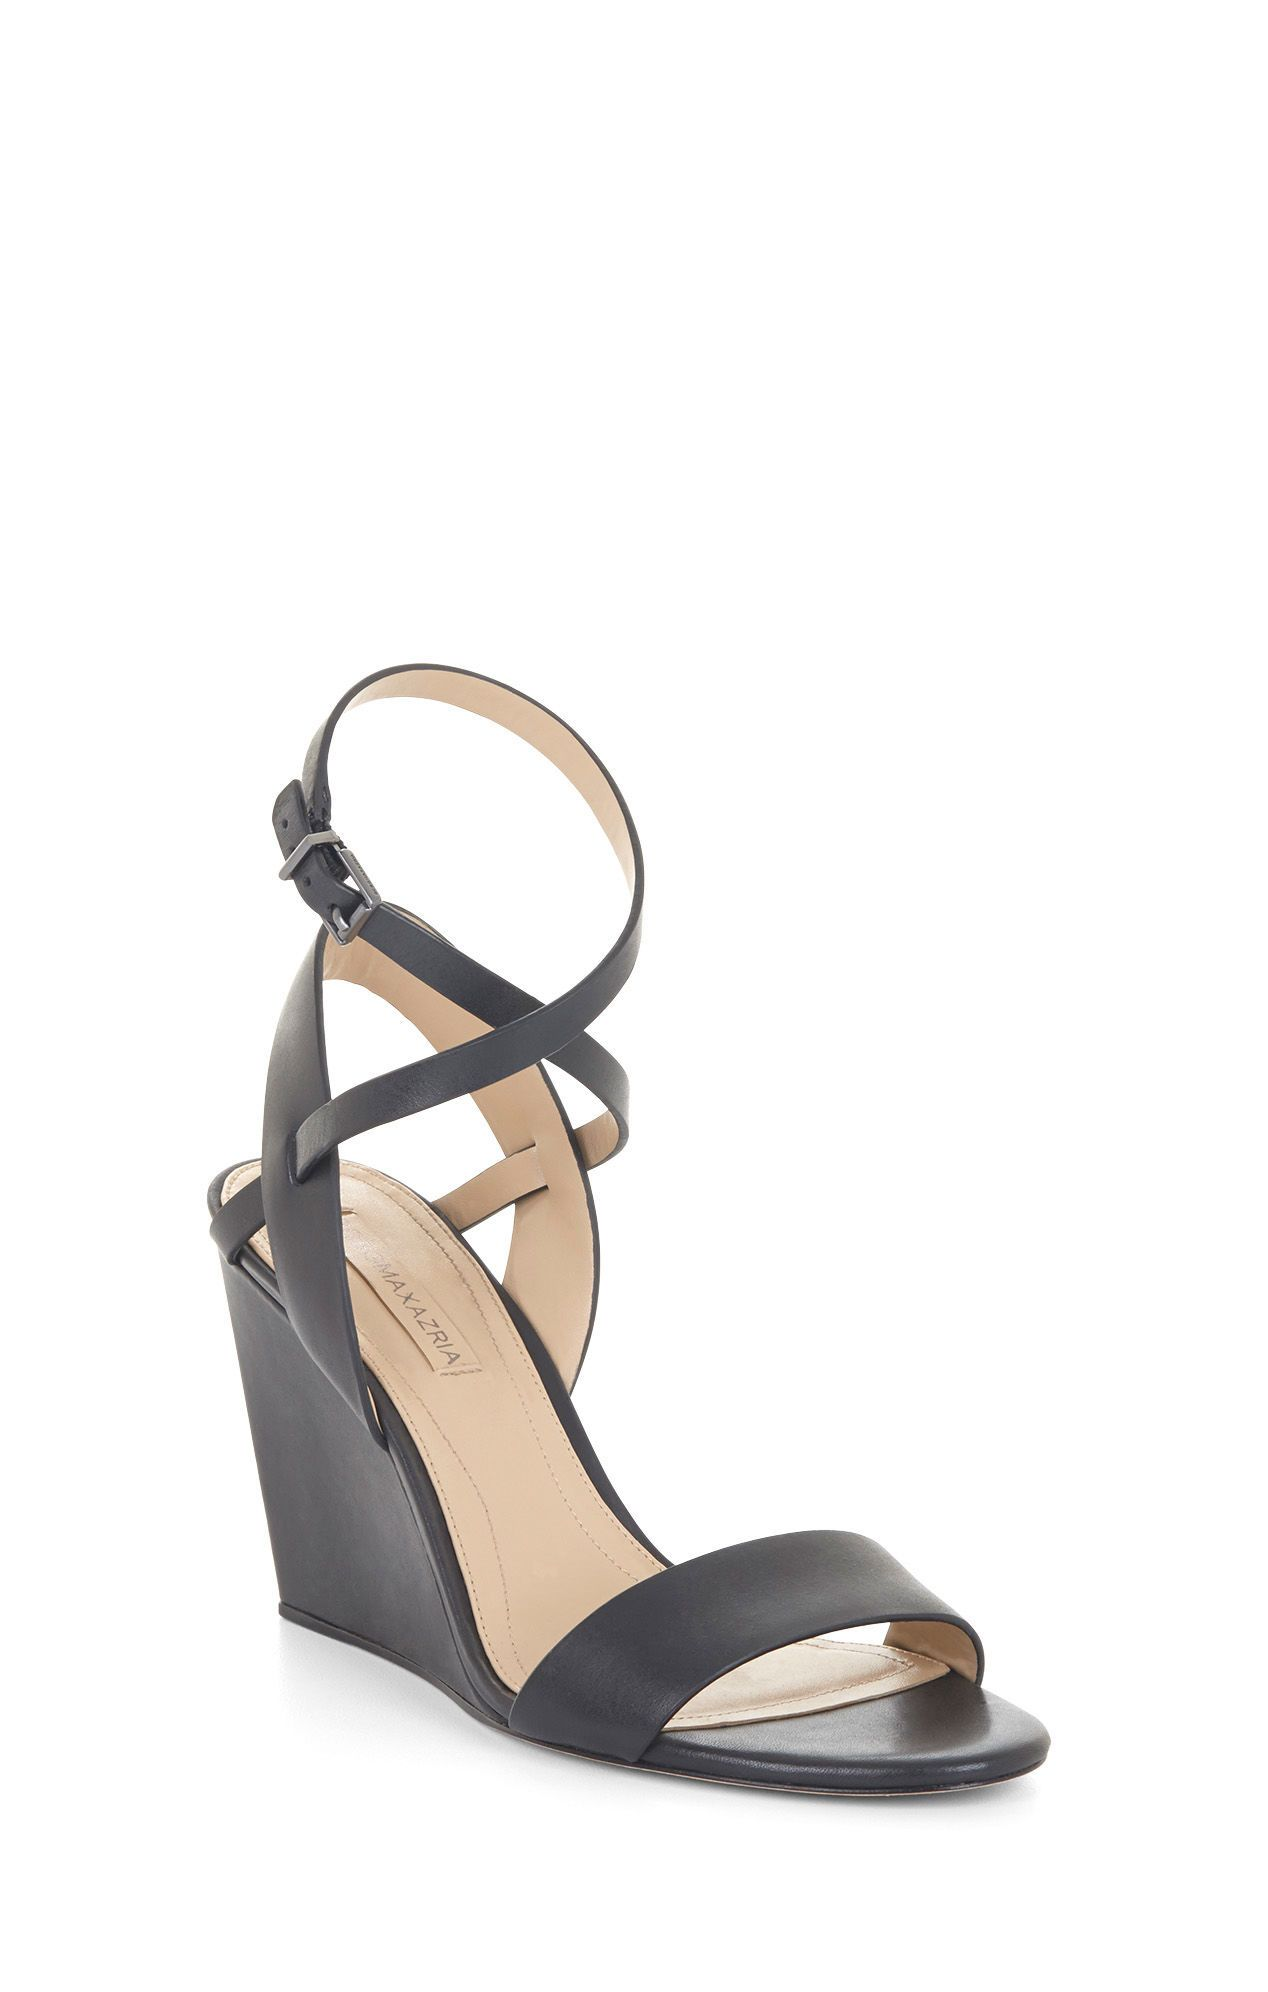 Lennox Leather Wedge Sandal | BCBG